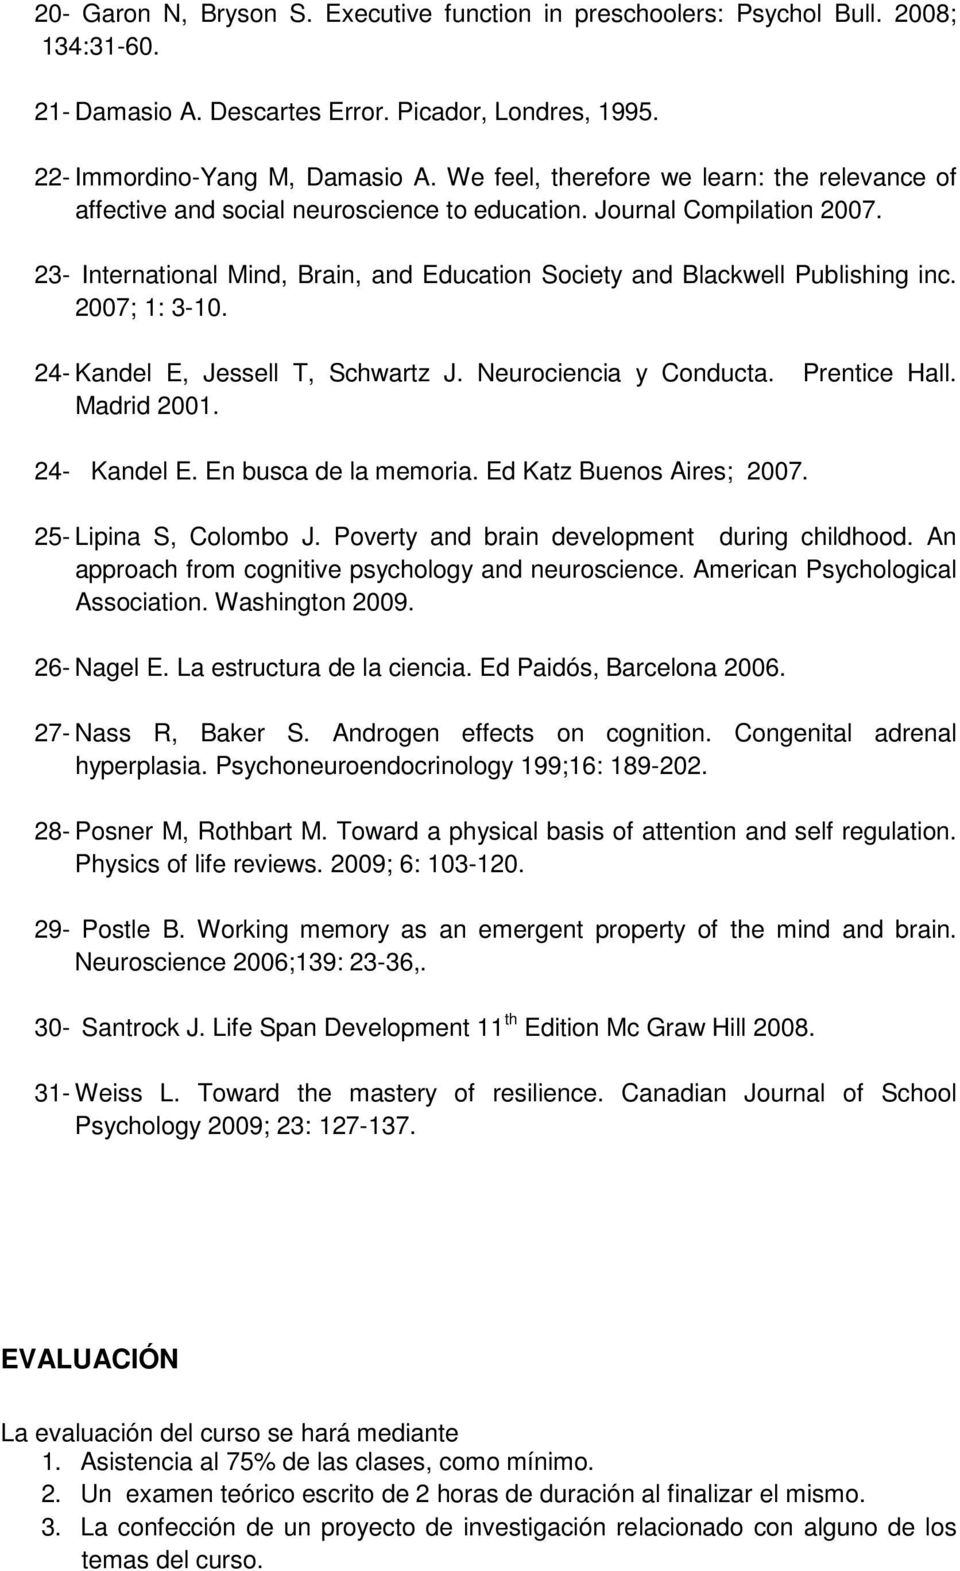 23- International Mind, Brain, and Education Society and Blackwell Publishing inc. 2007; 1: 3-10. 24- Kandel E, Jessell T, Schwartz J. Neurociencia y Conducta. Prentice Hall. Madrid 2001.